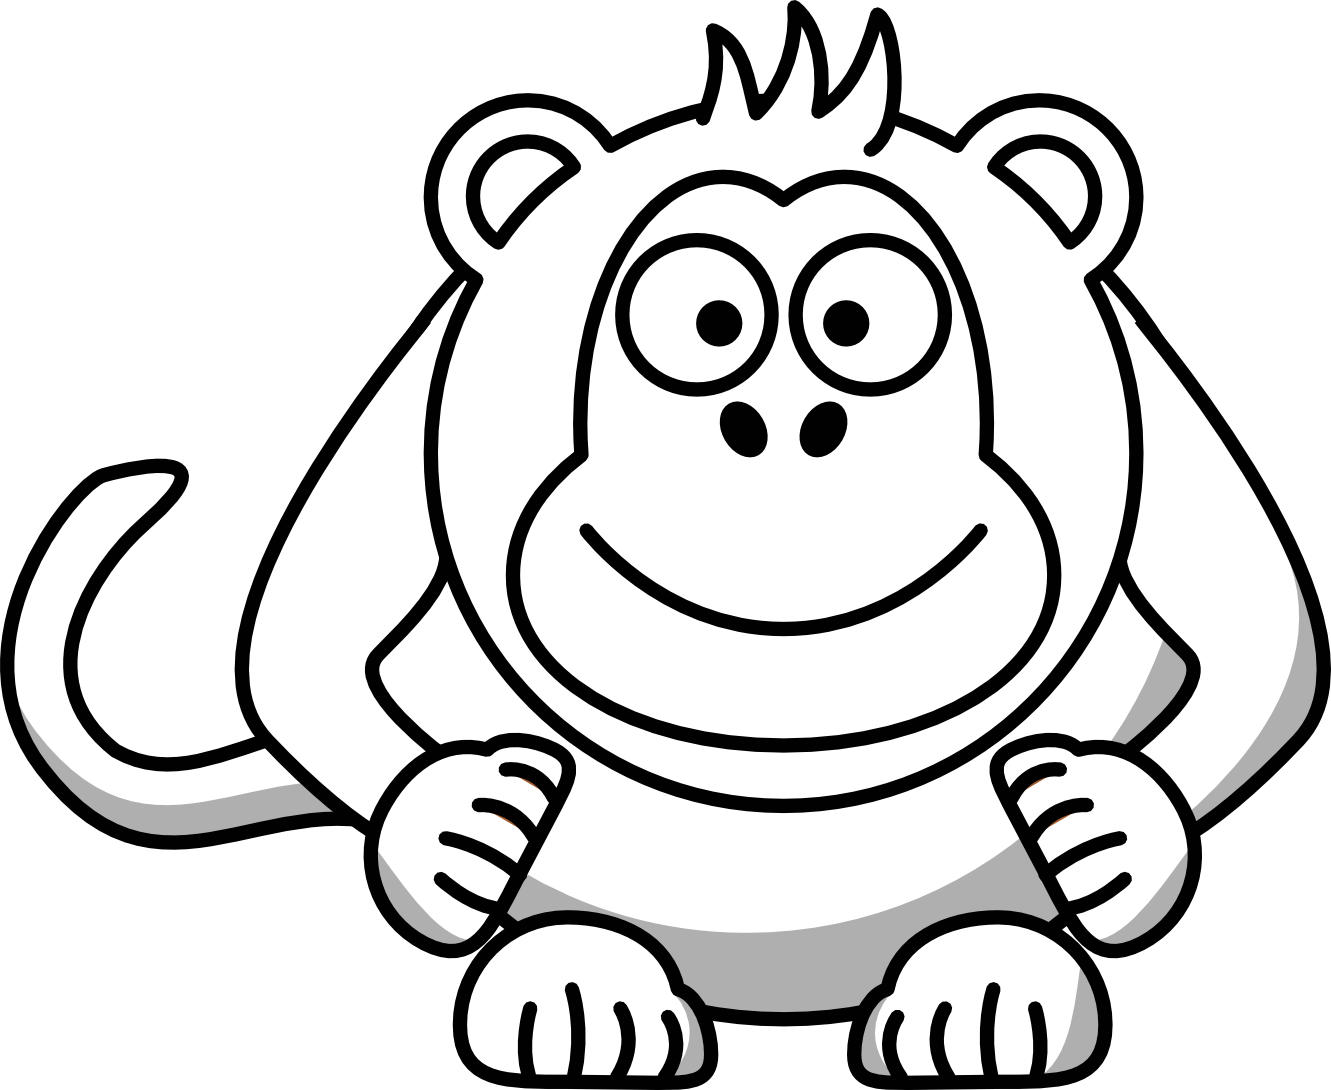 Clipart turtle monkey. Clip art black and